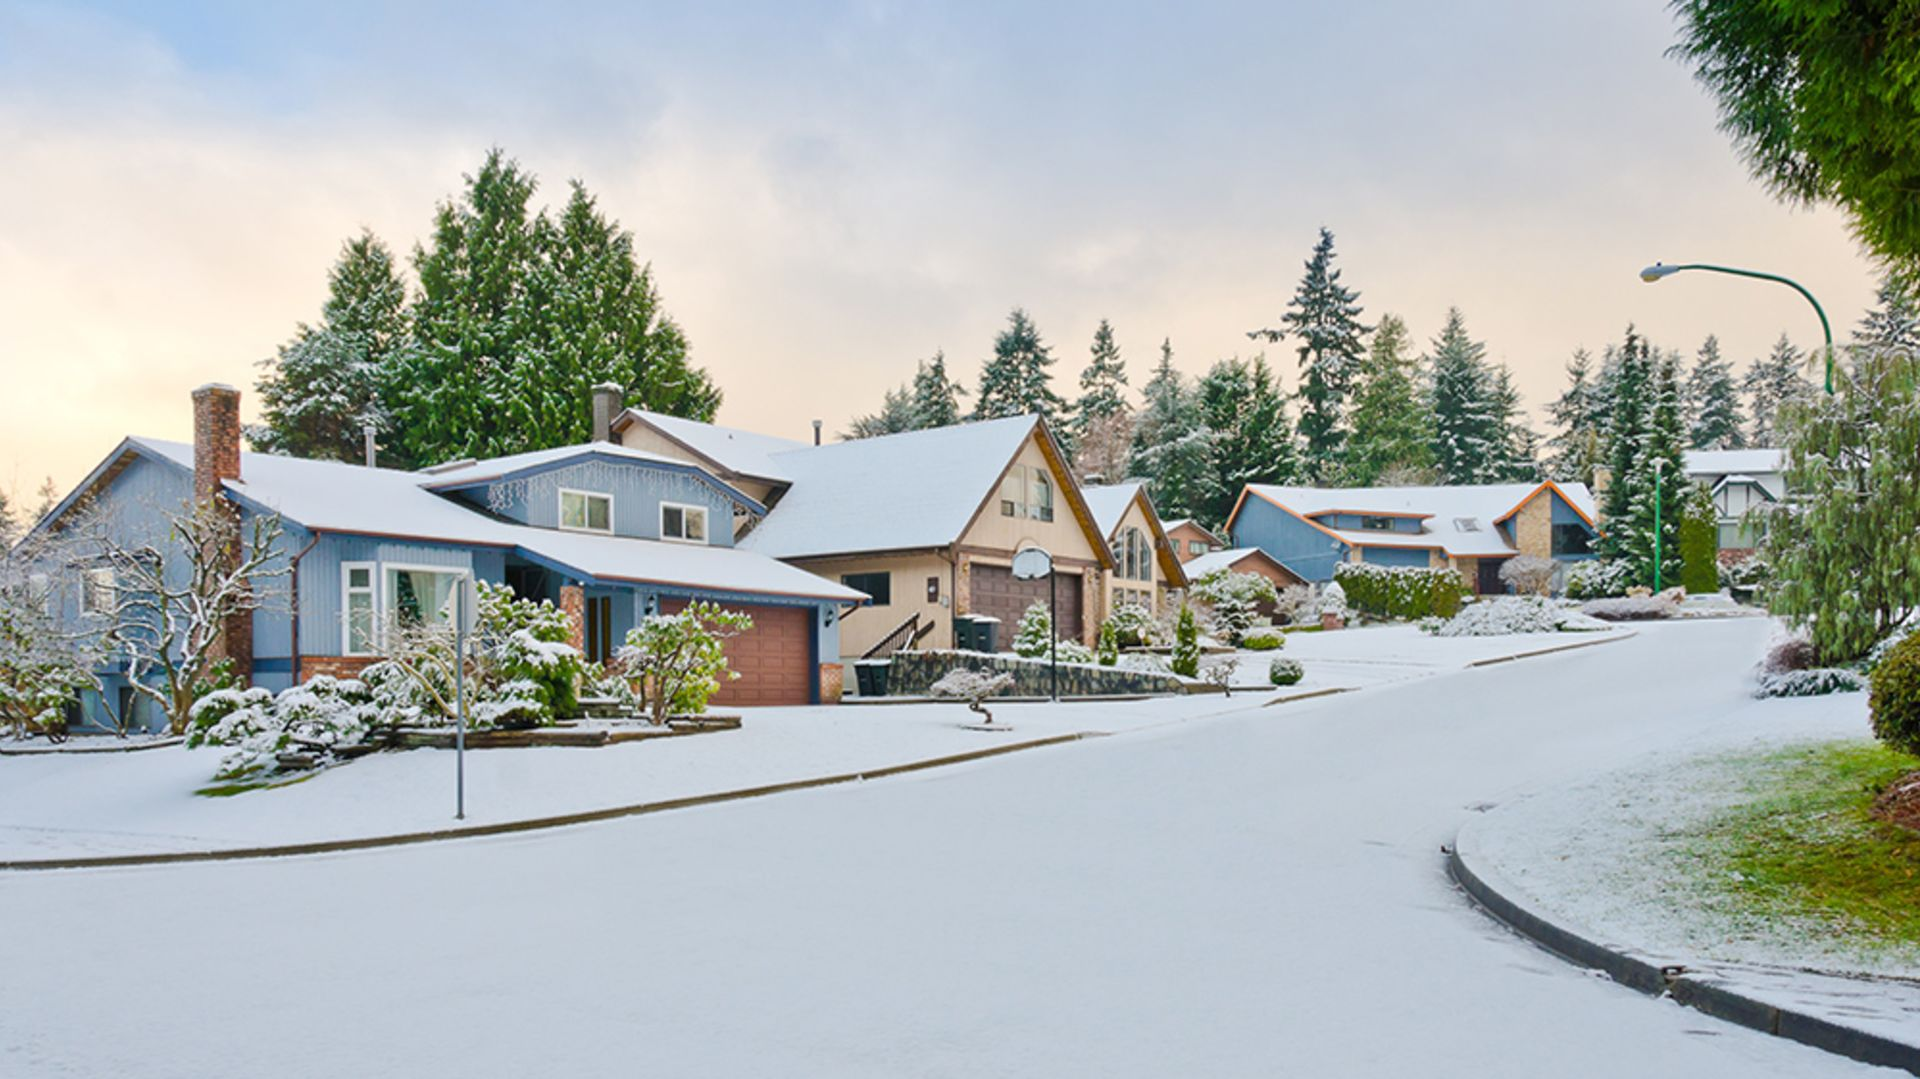 8 Ways To Get A Deal During Real Estate's Off-Season